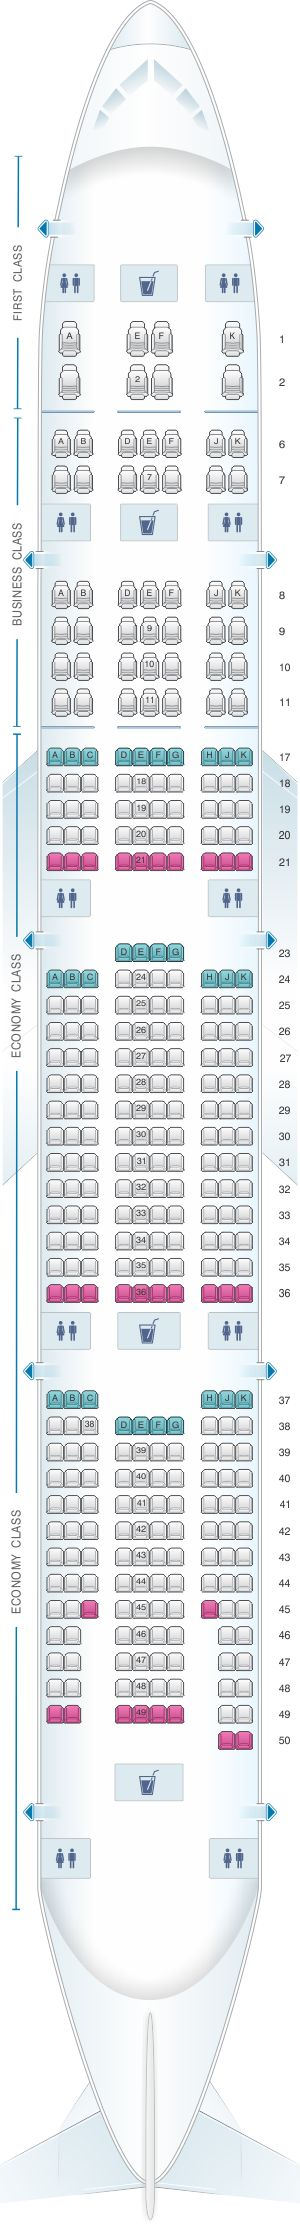 Seat Map Emirates Boeing B777 300ER three class private suite